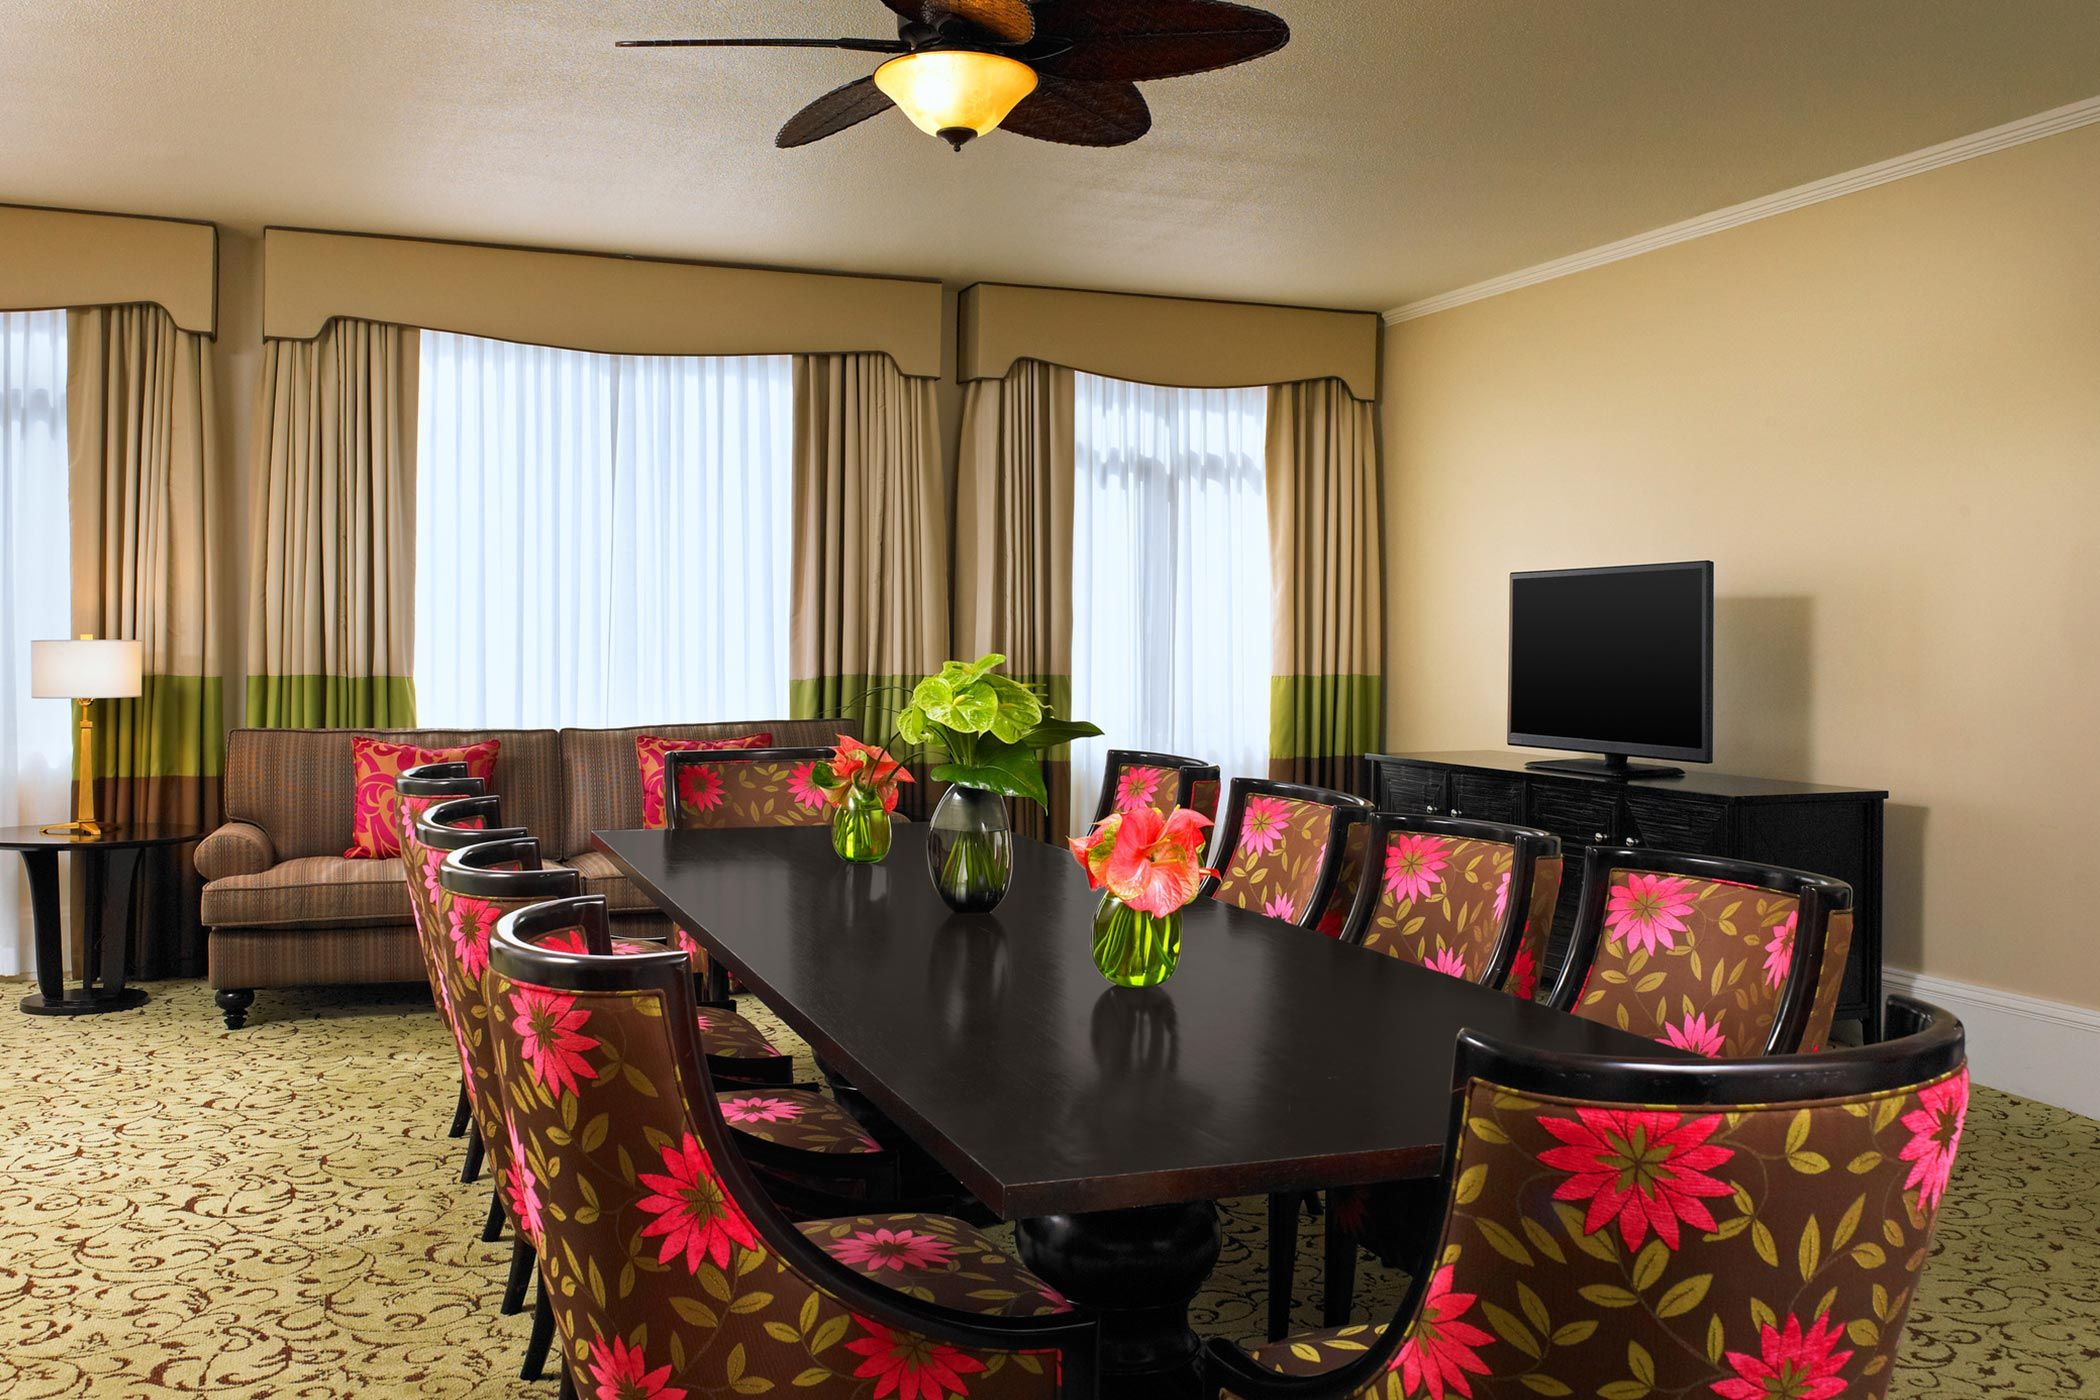 brown-and-pink floral padded chairs around long table